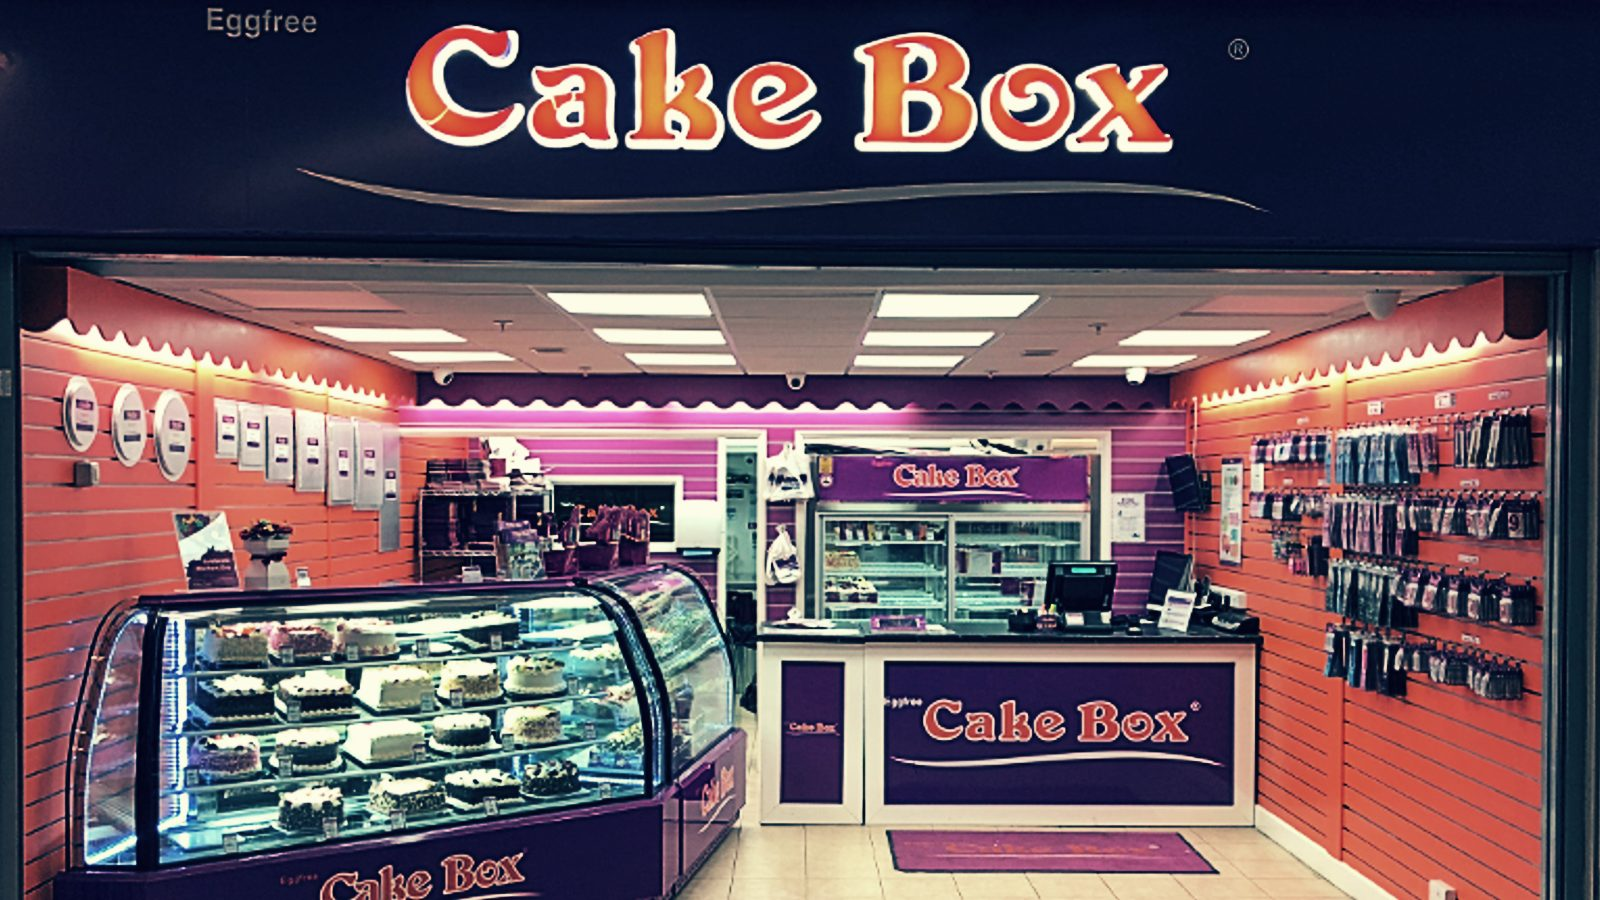 Egg Free Cake Box Suffer Data Breach Exposing Credit Card Numbers